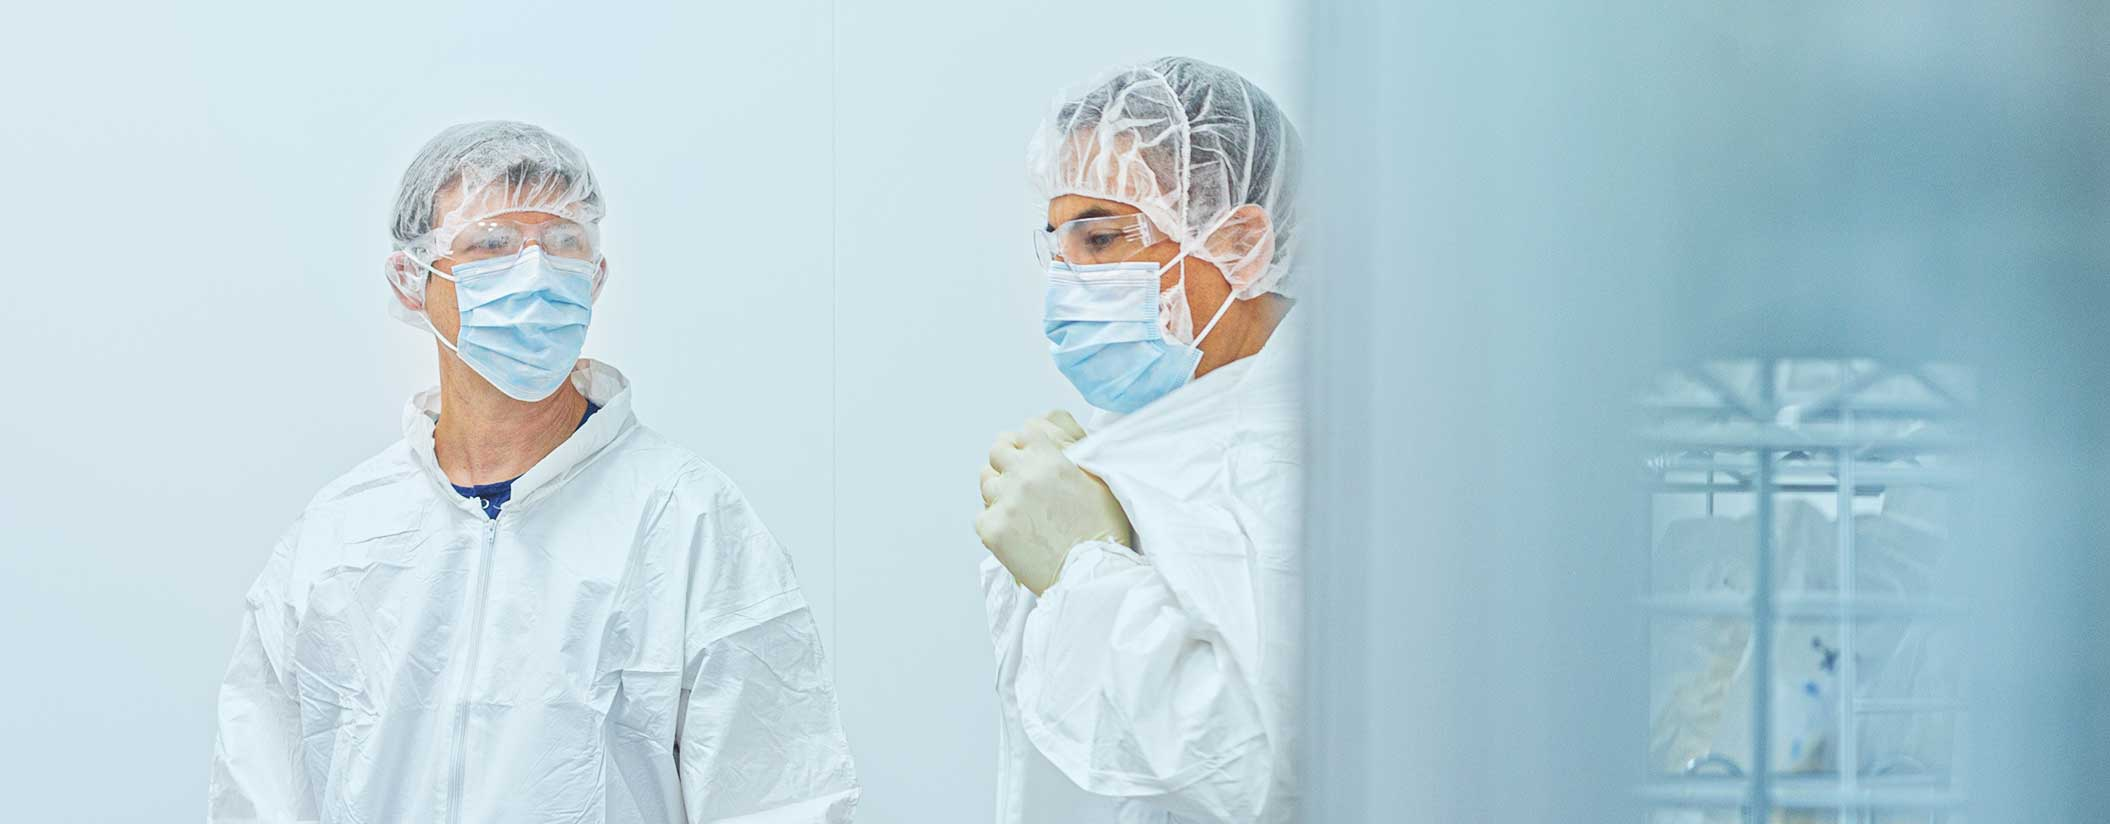 Two scientists in lab coats